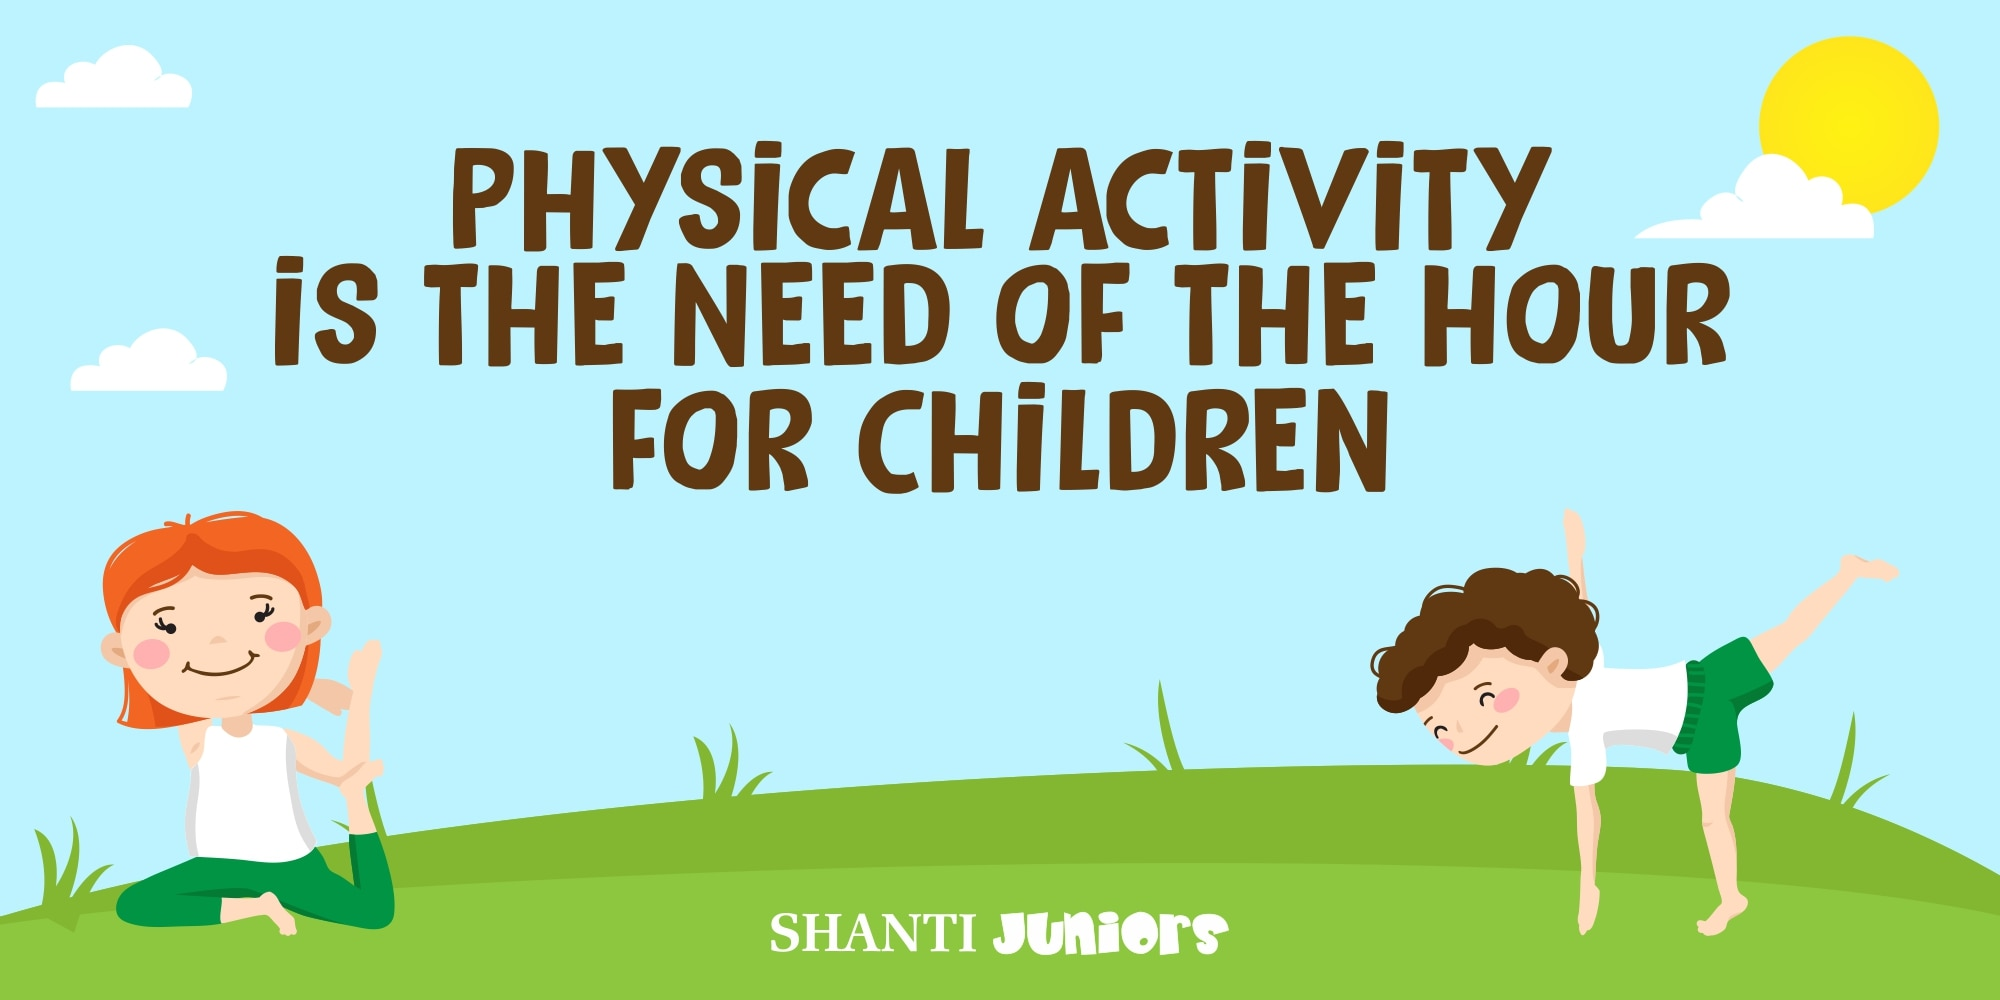 Physical activity is the Need of the hour for Children